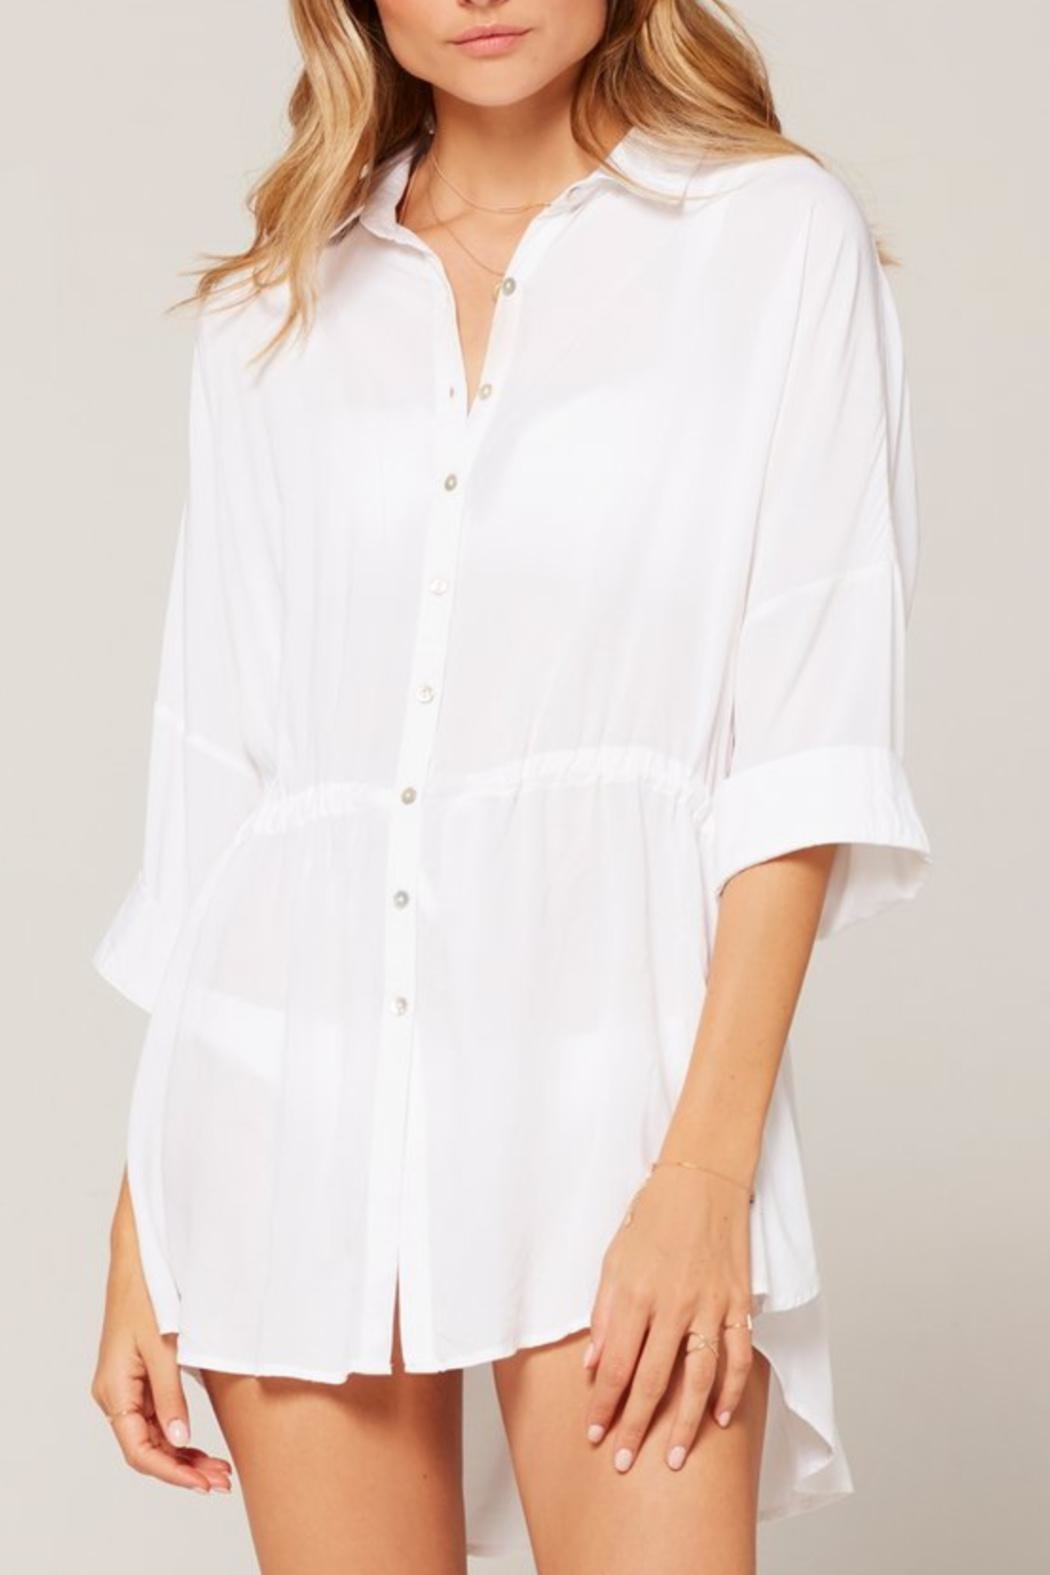 L SPACE Pacifica Button-Down Tunic - Front Cropped Image